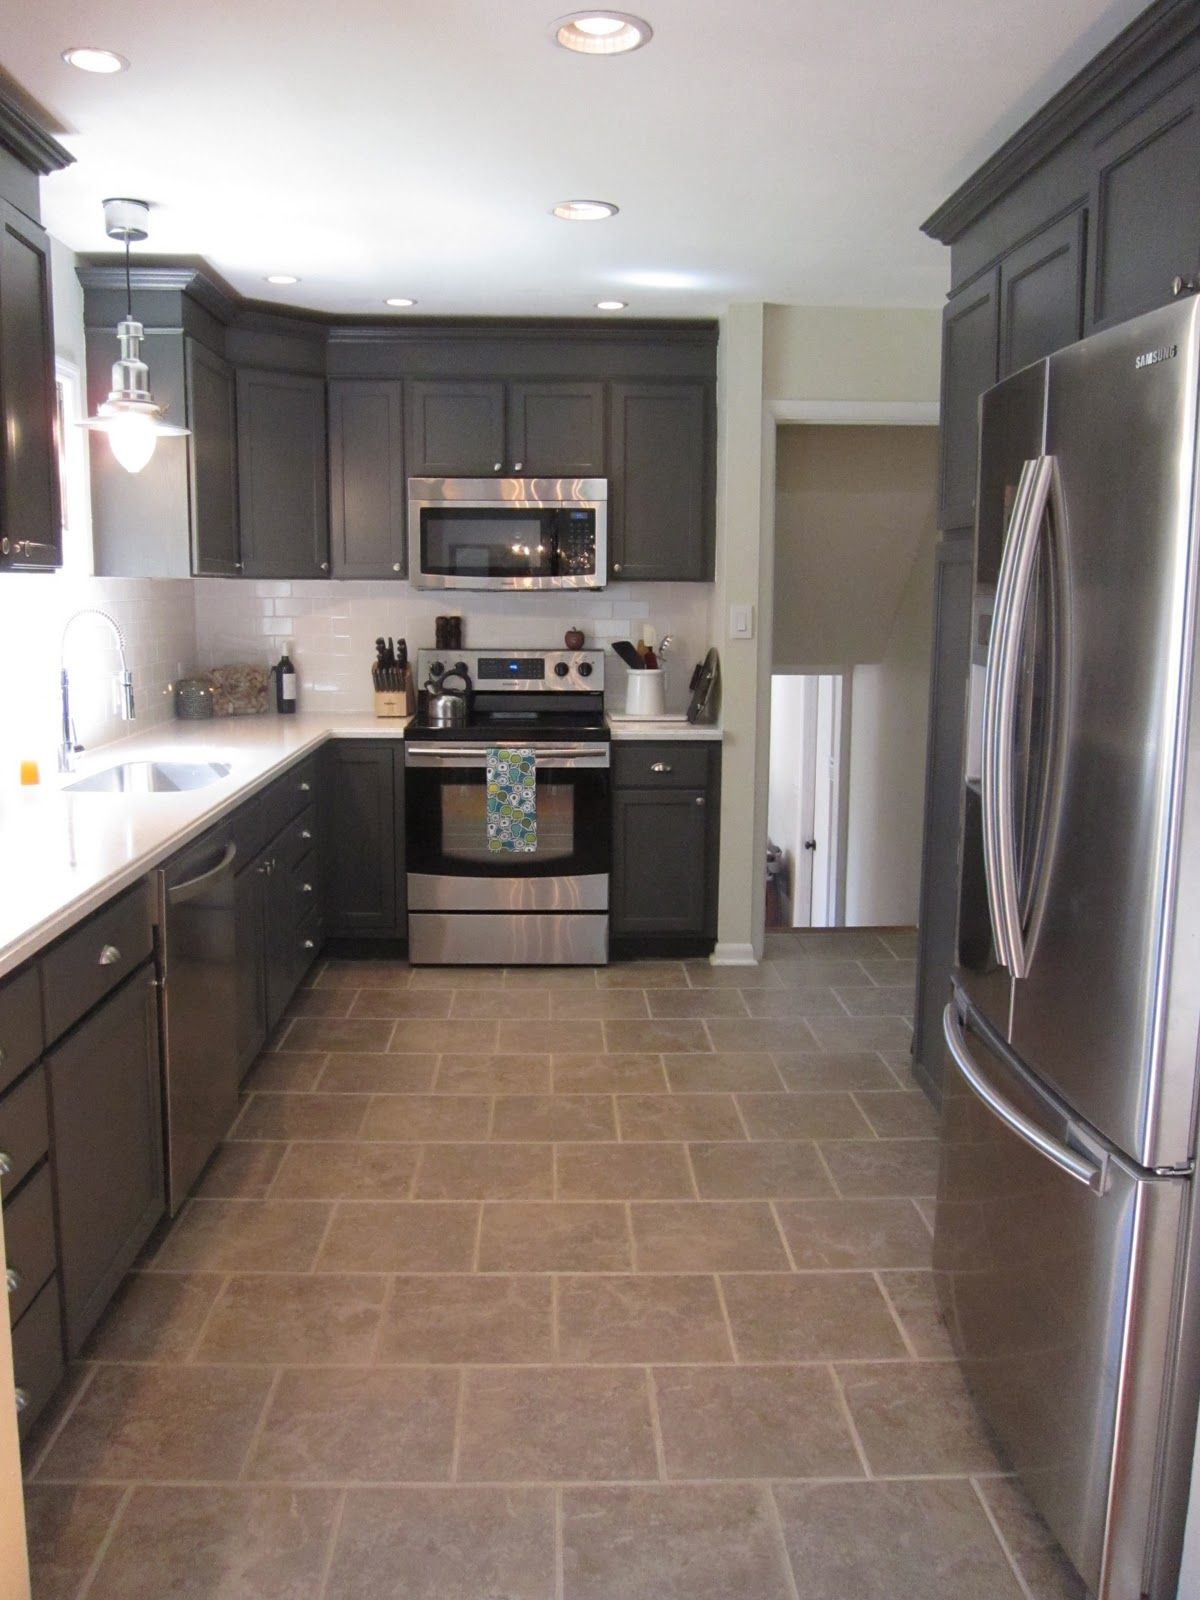 gray kitchen floor gray kitchen floor Kitchen Redo With Dark Gray Cabinets White Subway Tile Kitchen Redo With Dark Gray Cabinets